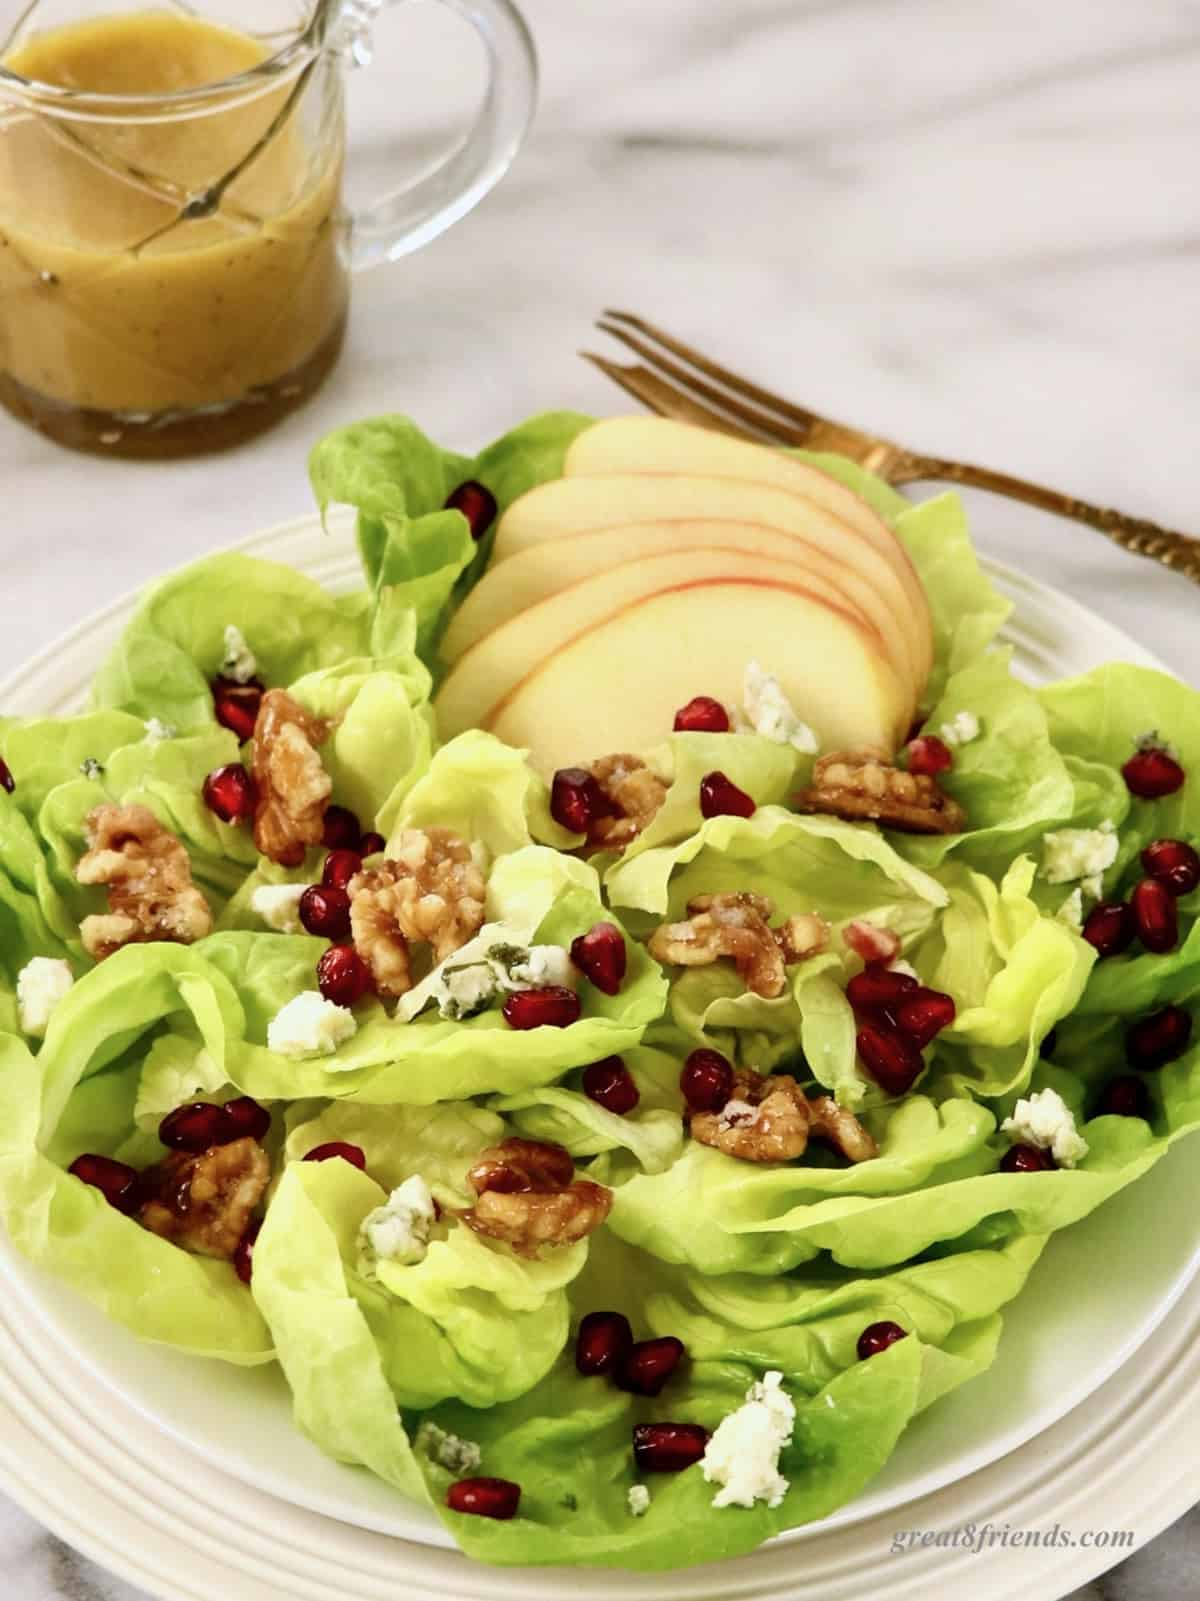 Salad with walnuts, bleu cheese and sliced apples with dressing in the background.